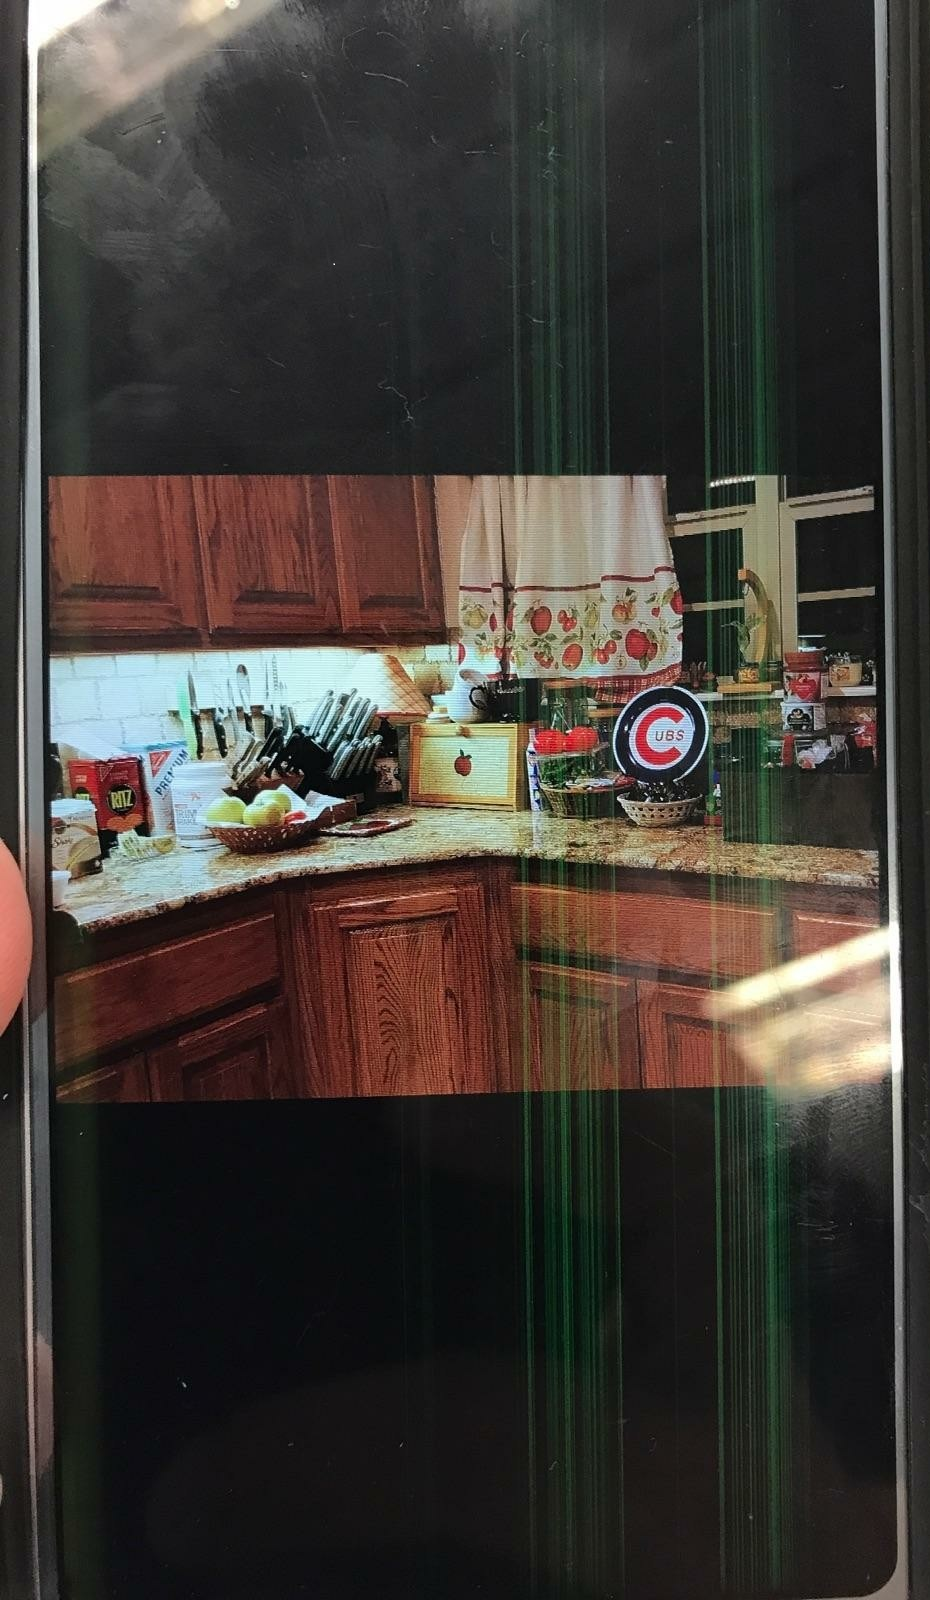 LG G6 colored lines fade in and out/screen is dim